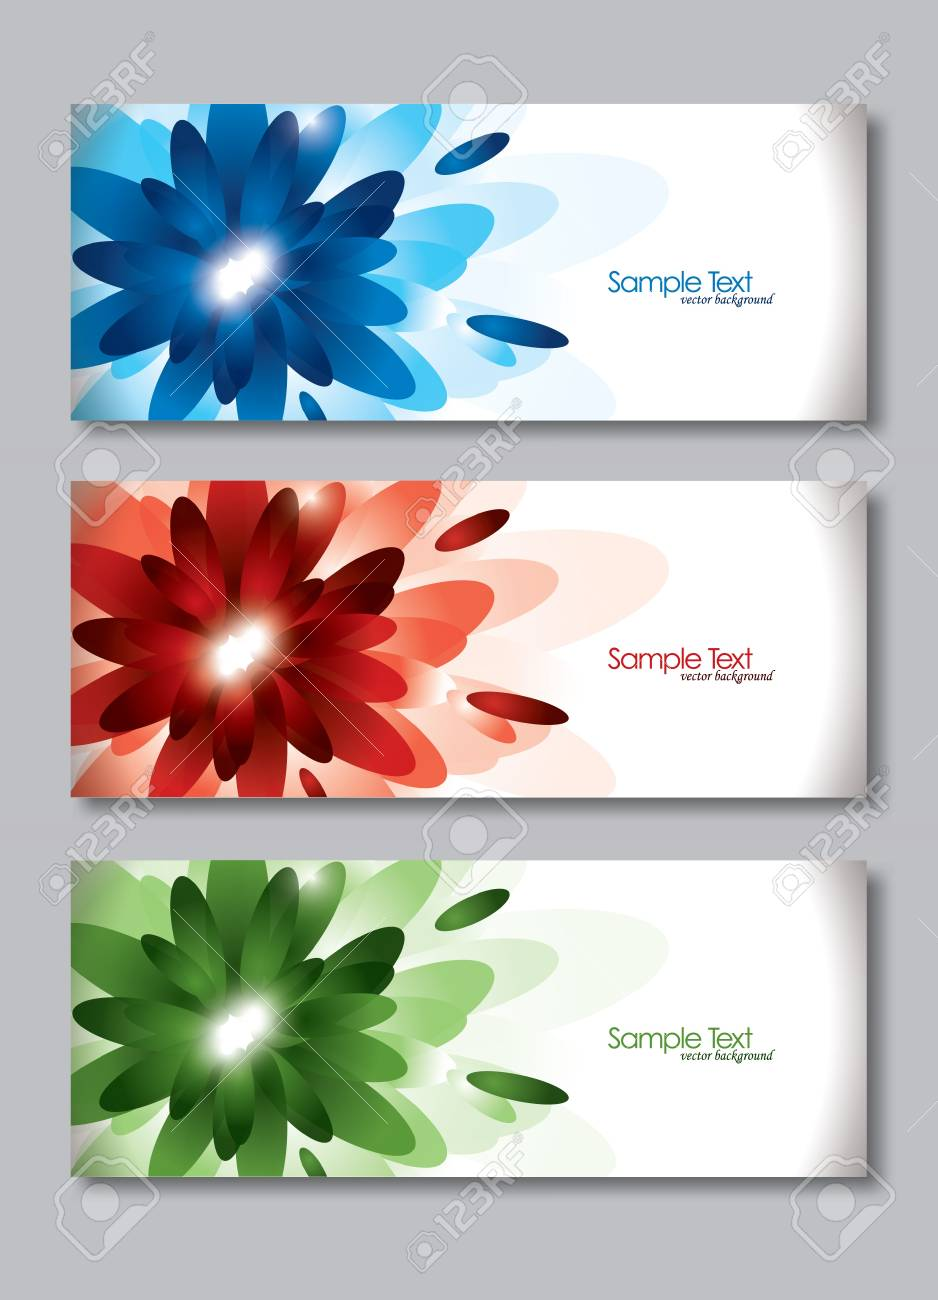 Set of Three Banners  Abstract Vector Headers Stock Vector - 14372072